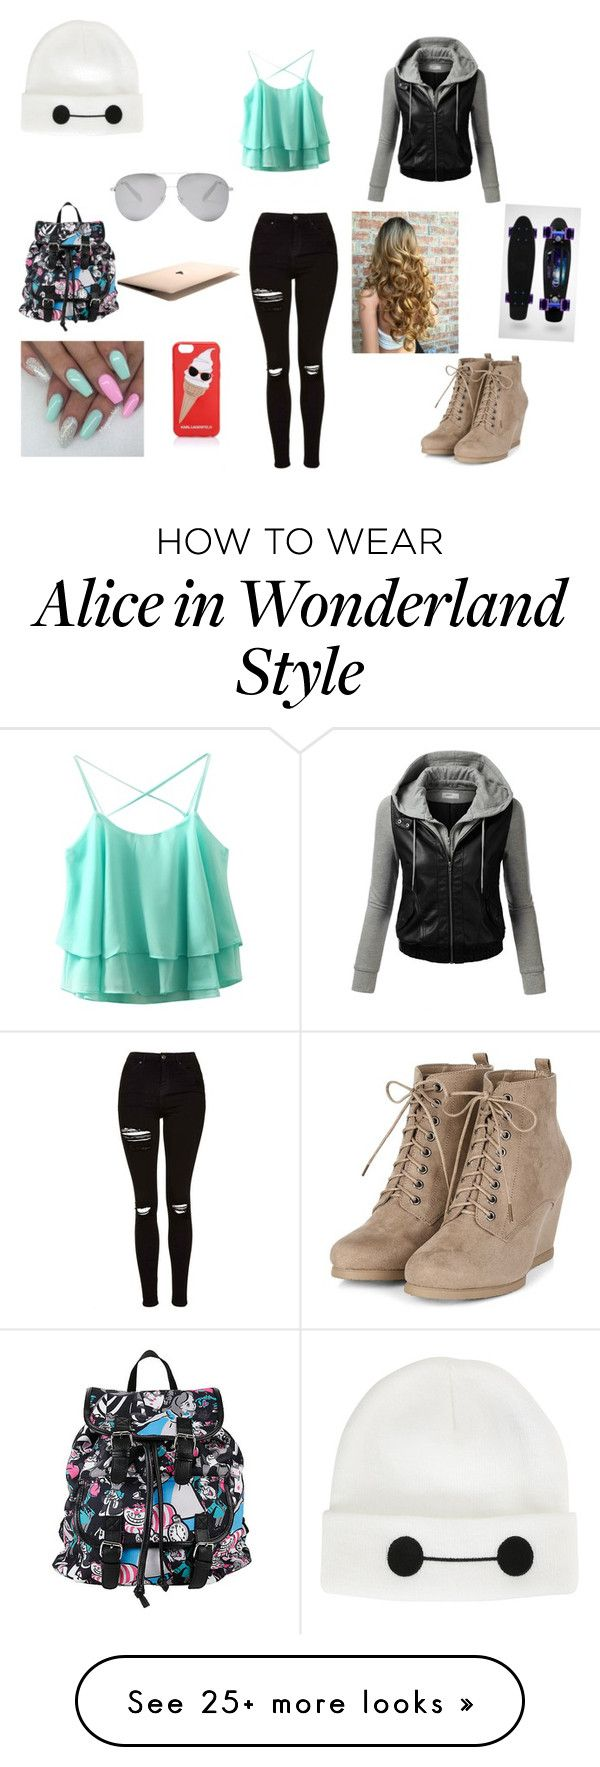 """Untitled #234"" by mollykmcnicol on Polyvore featuring Topshop, Disney, J.TOMSON, Victoria Beckham and Karl Lagerfeld"